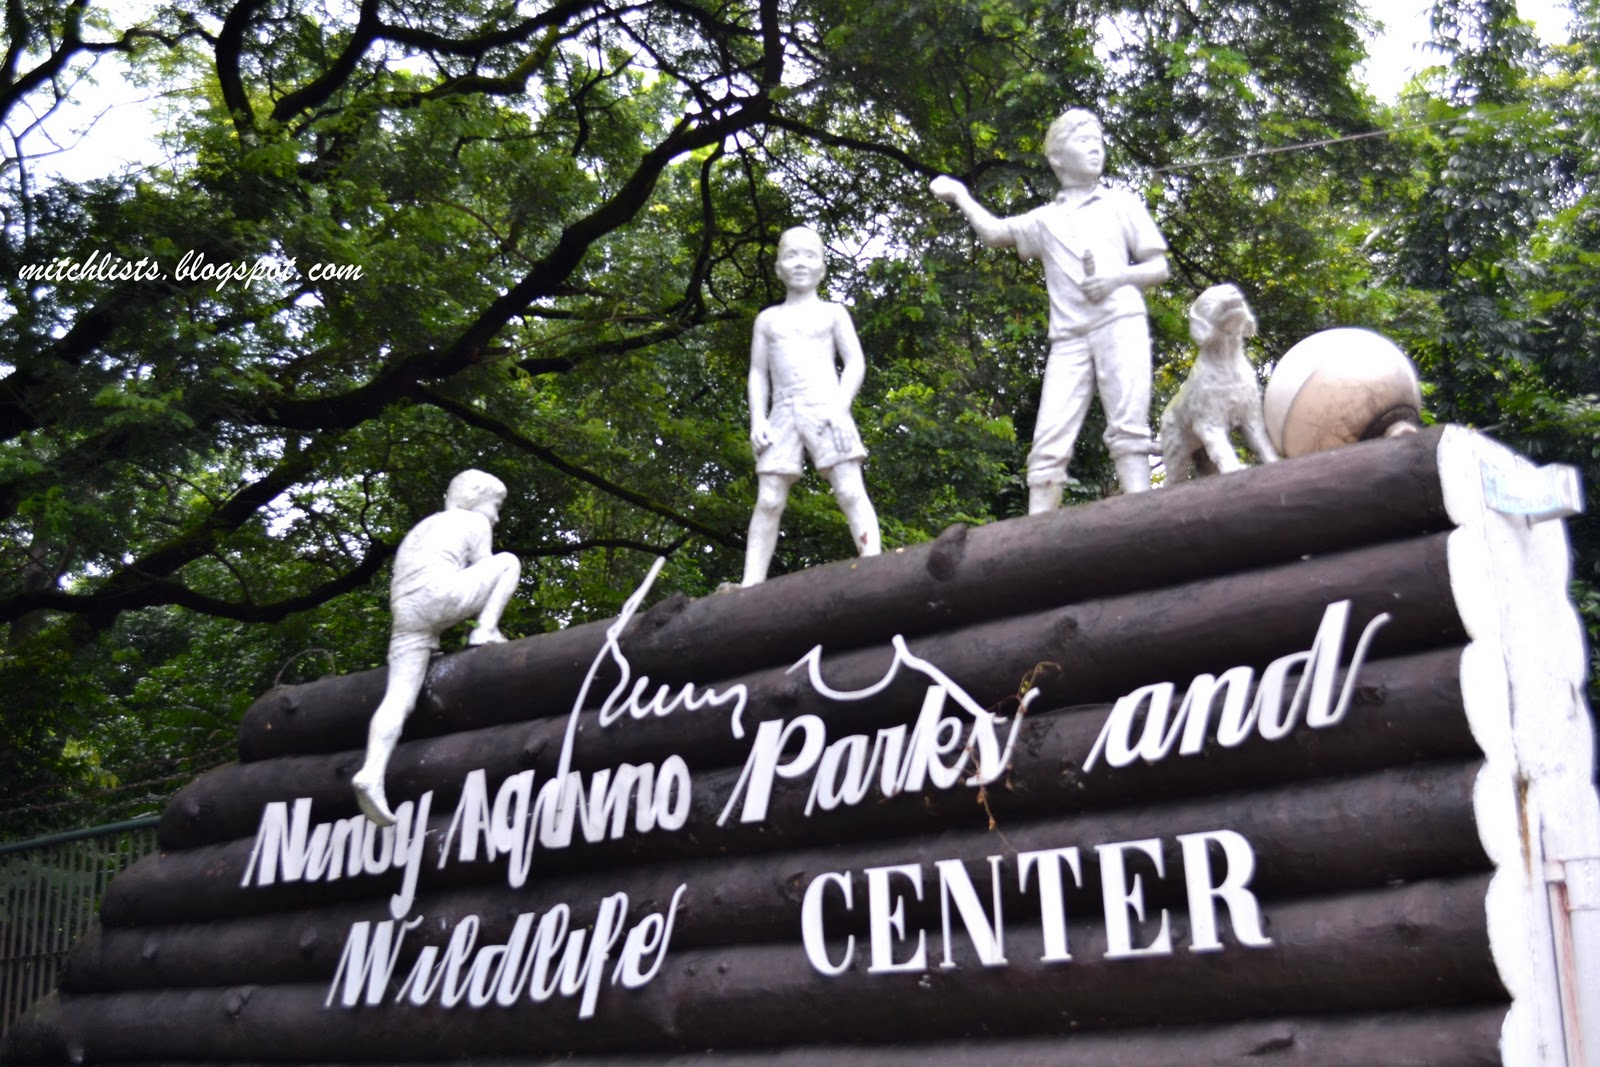 ninoy aquino parks and wildlife center Ninoy aquino park & wildlife center is a 6458-hectare zoological and botanical garden located in diliman, quezon city, philippines this park has a lagoon, an .